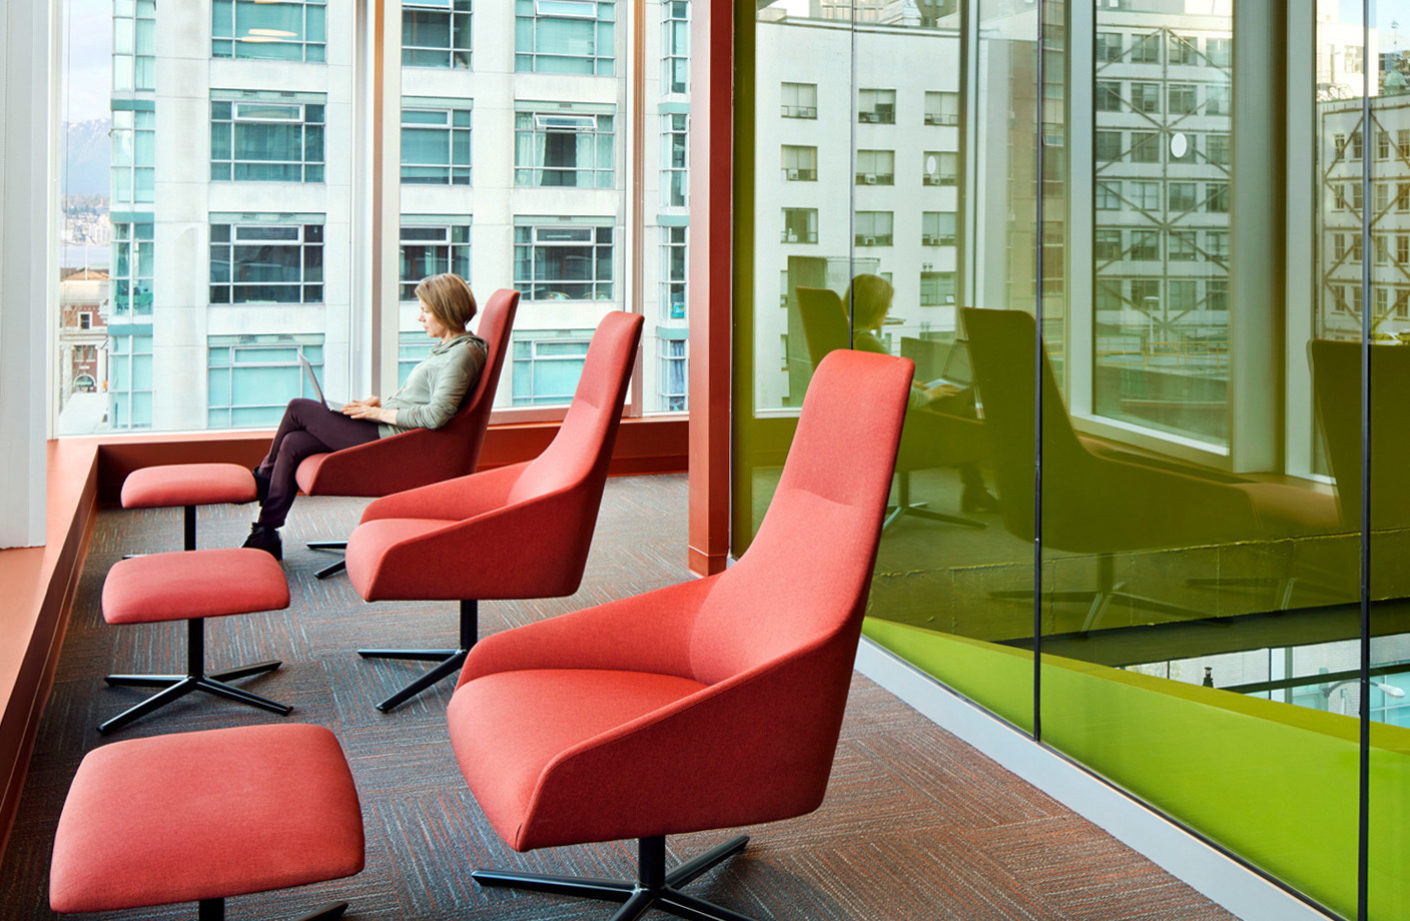 Cheerful atmosphere: The Alya Lounge Chair by Andreu World at the canadian Adler University are upholstered in bright orange and green.